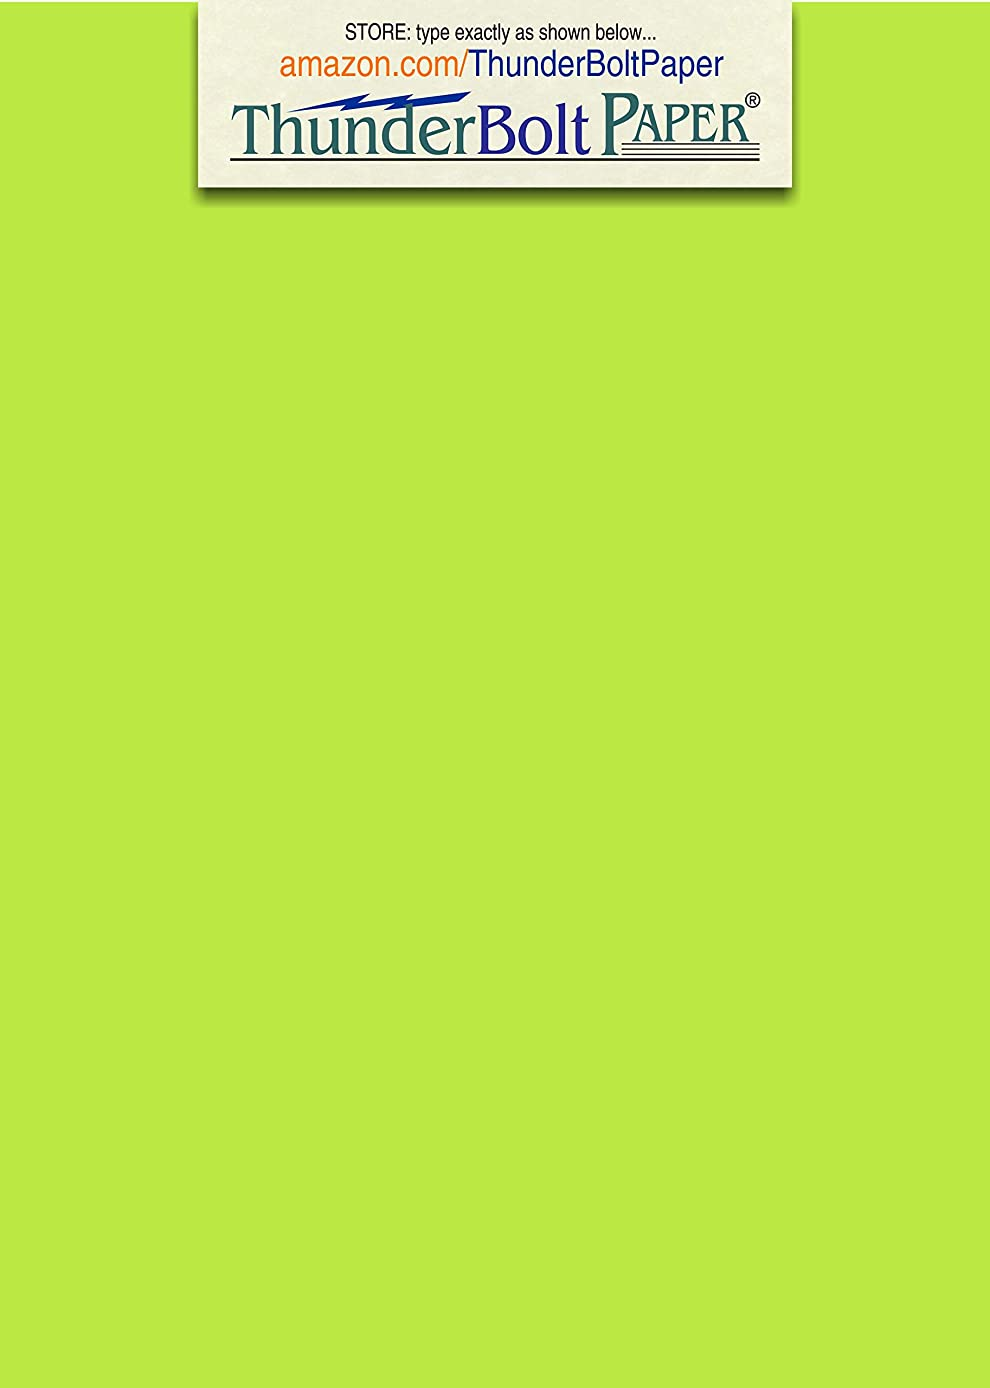 200 Bright Lime Green 65lb Cover|Card Paper - 5 X 7 Inches Photo|Card|Frame Size - 65 lb/Pound Light Weight Cardstock - Quality Printable Smooth Surface for Bright Colorful Results